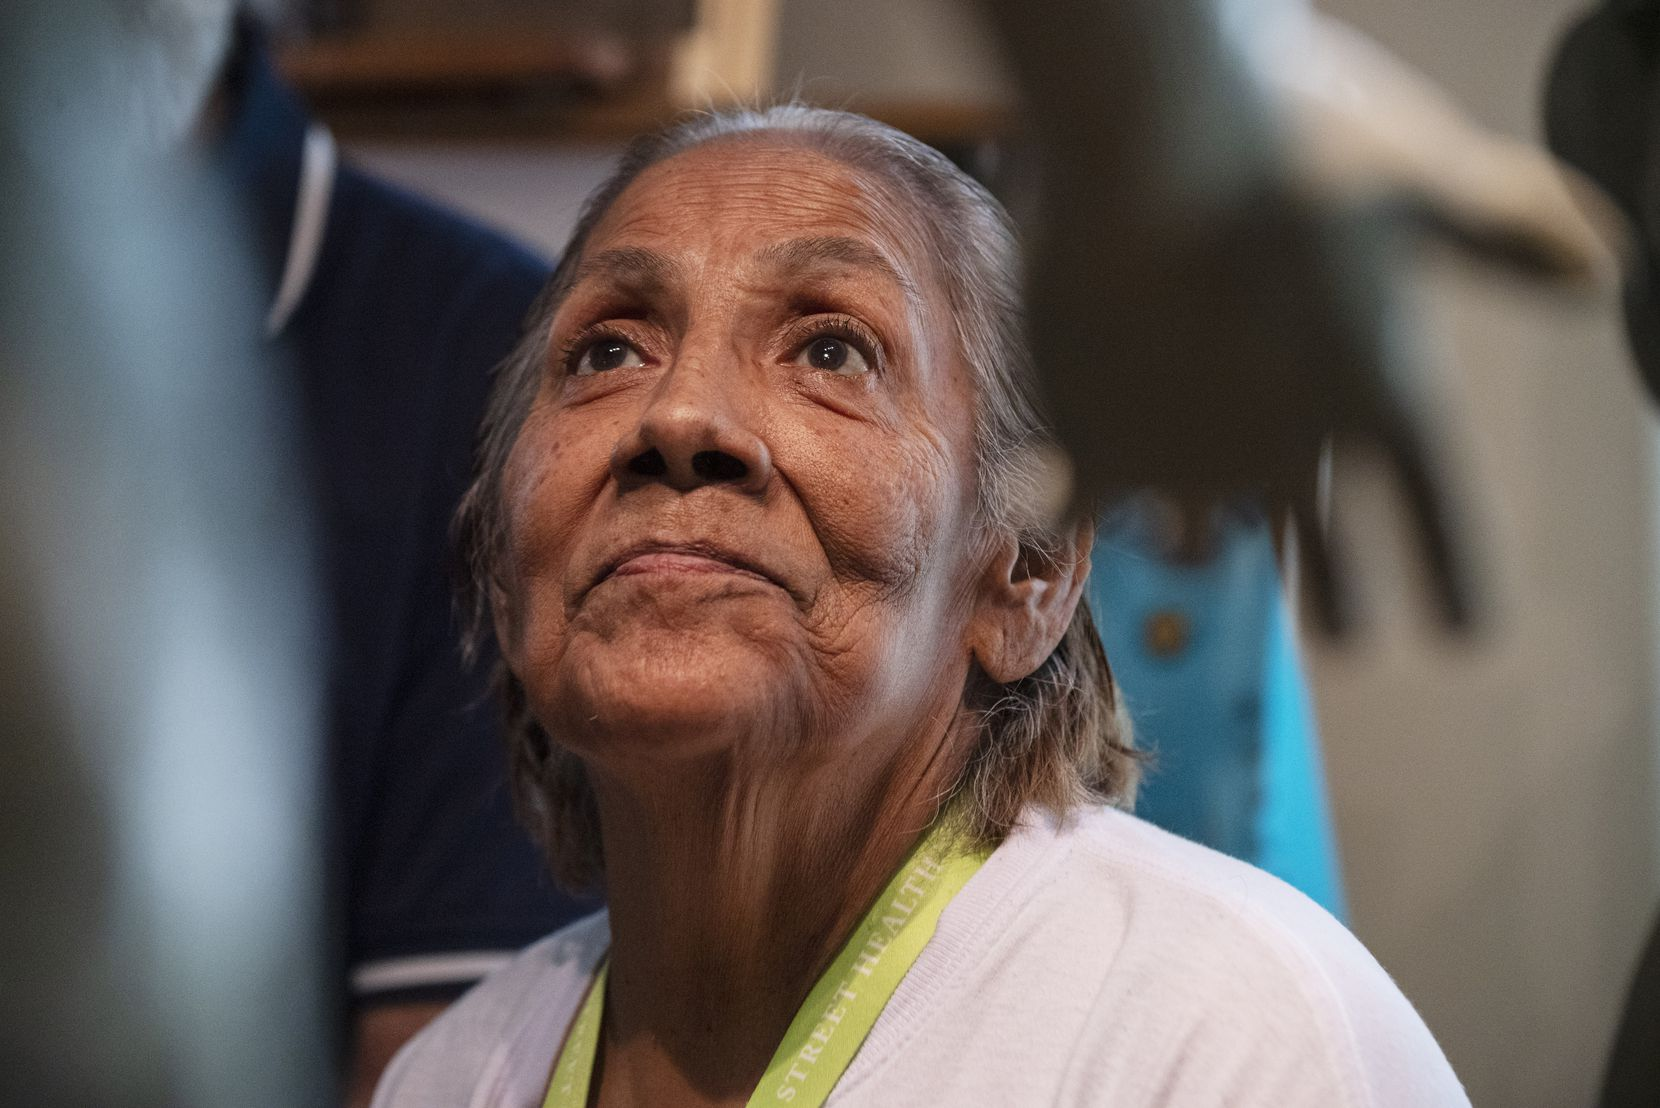 Bessie Rodriguez, mother of Santos Rodriguez, views for the first time the statue that was made in Santos' image, at the studio of sculptor Seth Vandable in Cedar Hill, on Tuesday, July 20, 2021. Santos was a 12-year-old boy when he was killed by Dallas police officer 48 years ago.